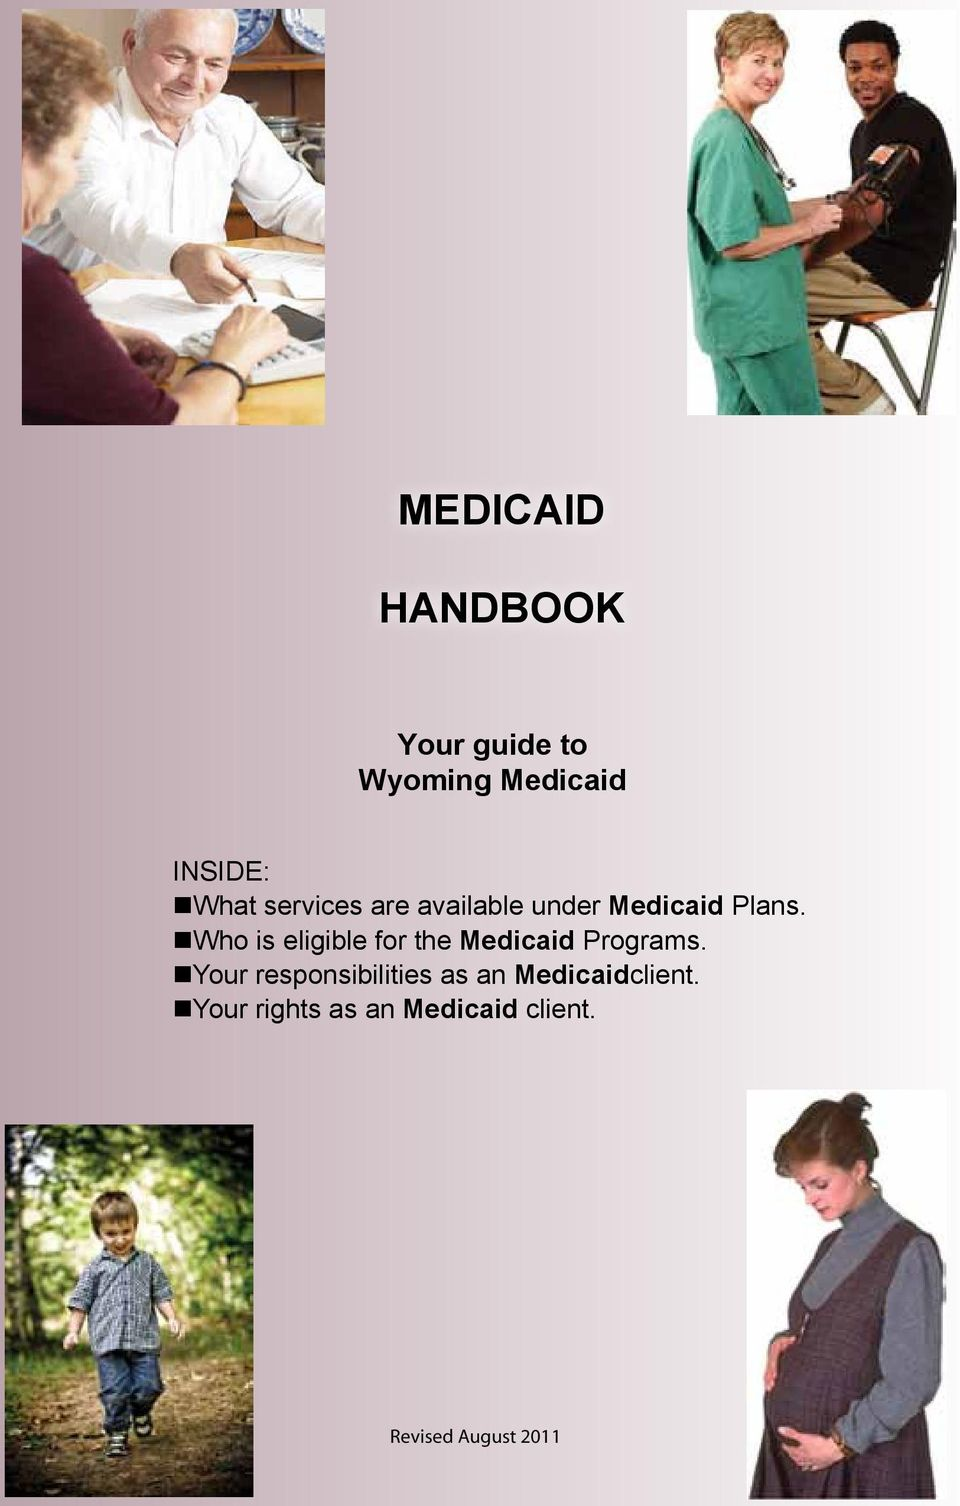 Who is eligible for the Medicaid Programs.